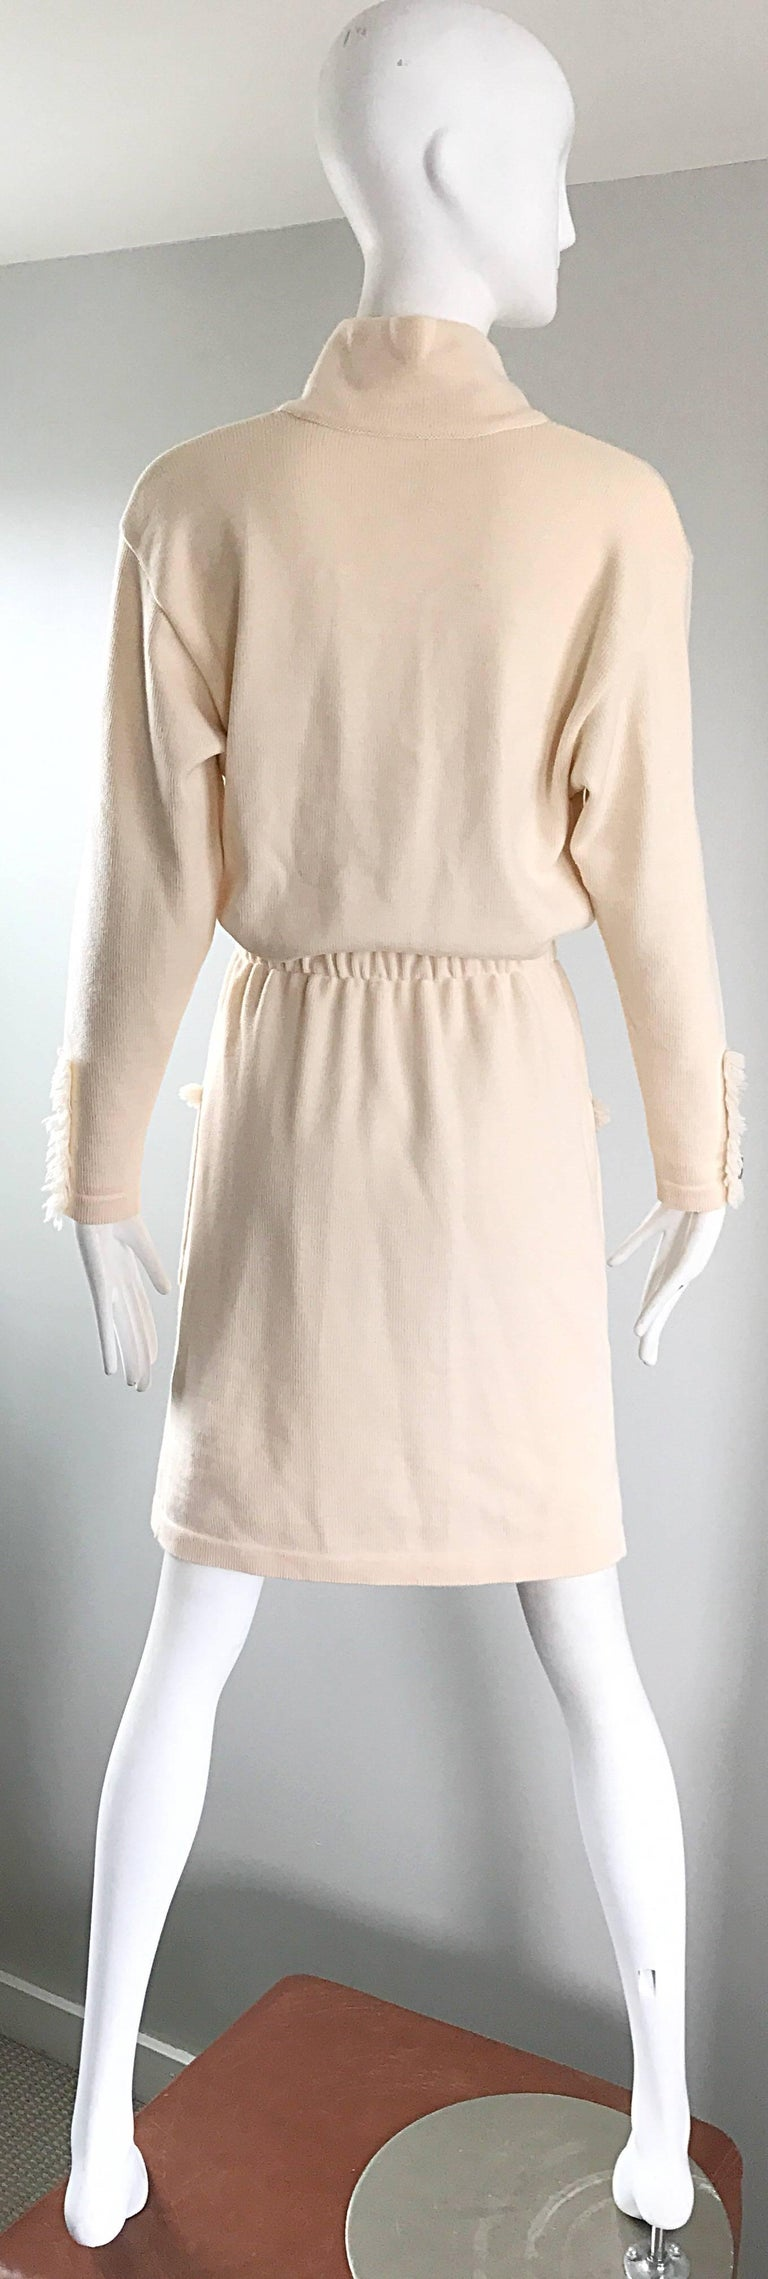 Vintage Escada by Margaretha Ley Ivory Wool + Cashmere 1990s 90s Sweater Dress 5